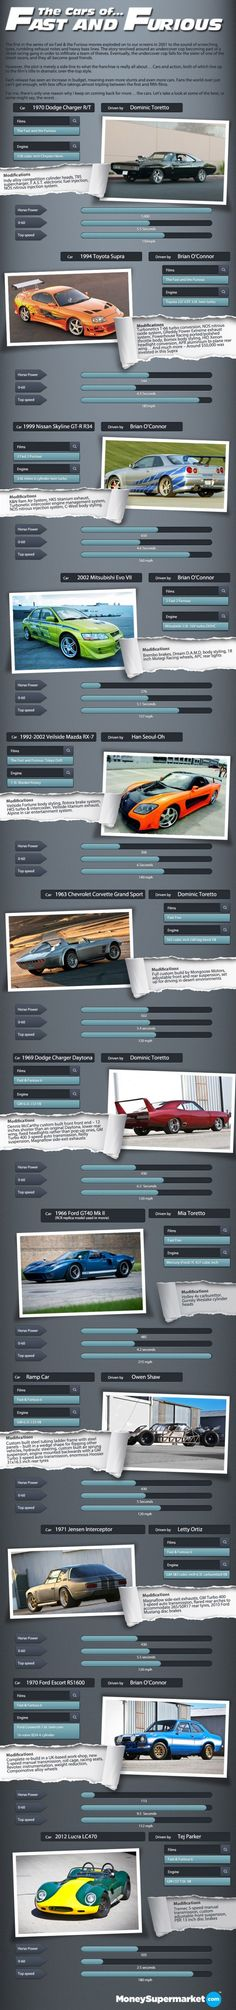 The cars of the Fast and the Furious Movies